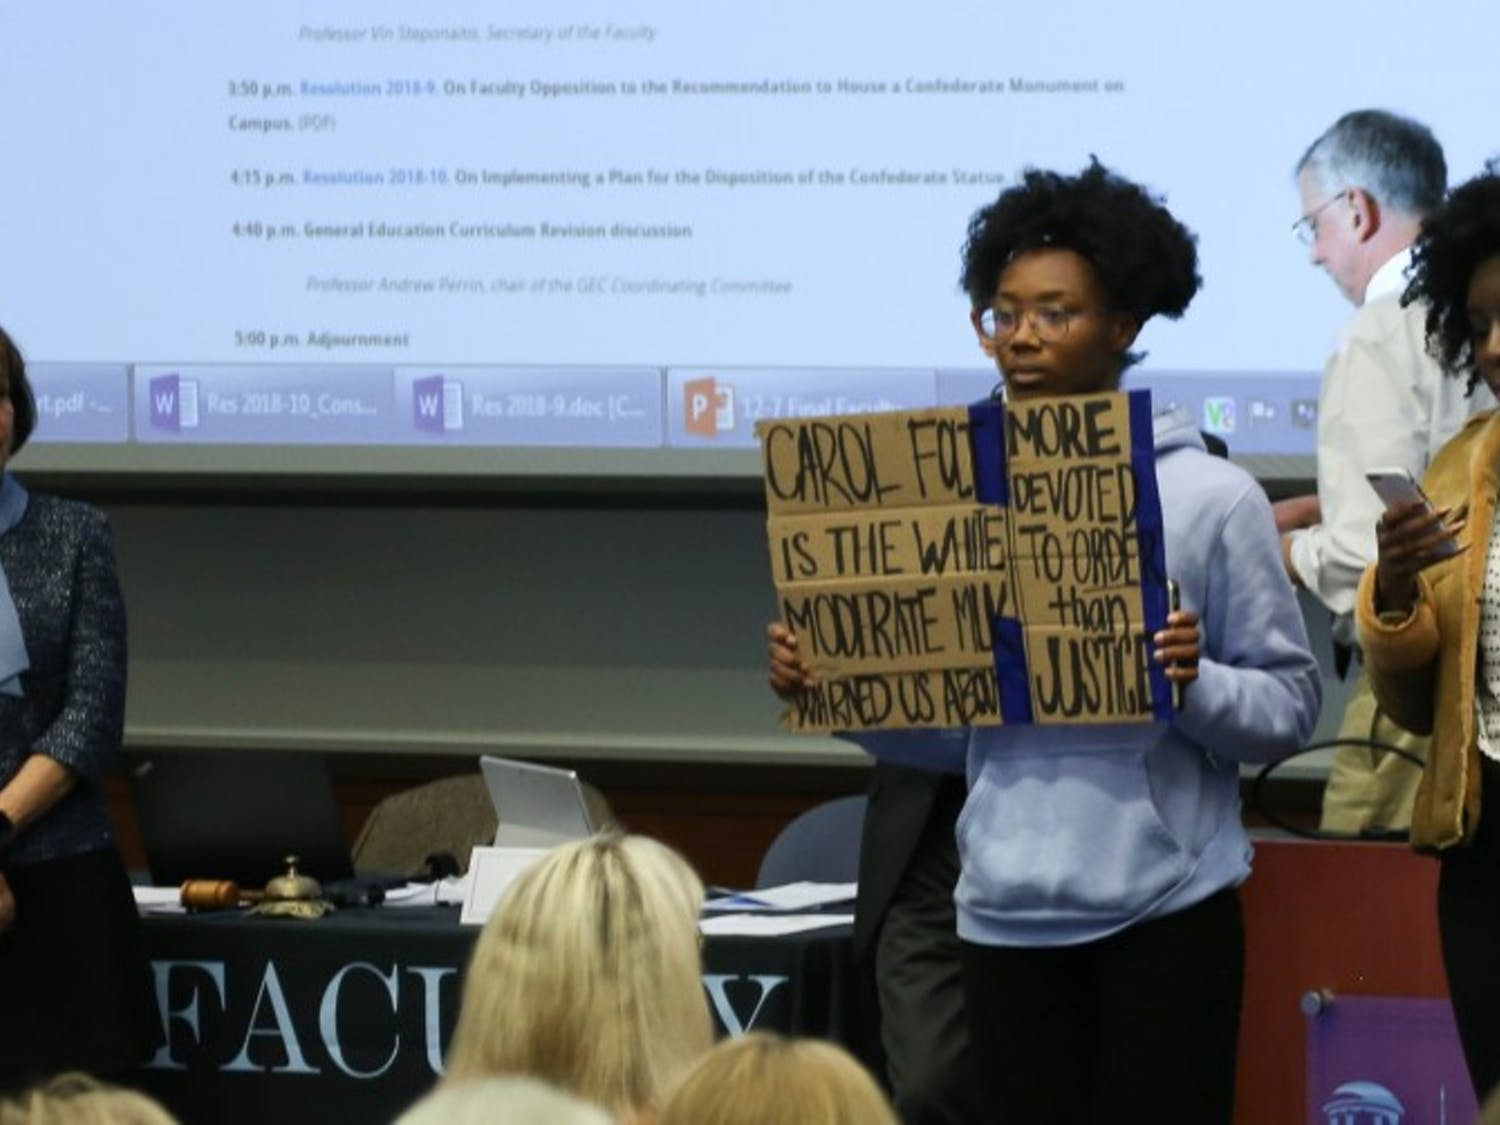 Chancellor Carol Folt looks on as undergraduate students Angum Check and Tamia Sanders take the stage to show their disapproval of the proposal given by Folt about the re-erection of Silent Sam on UNC's campus.